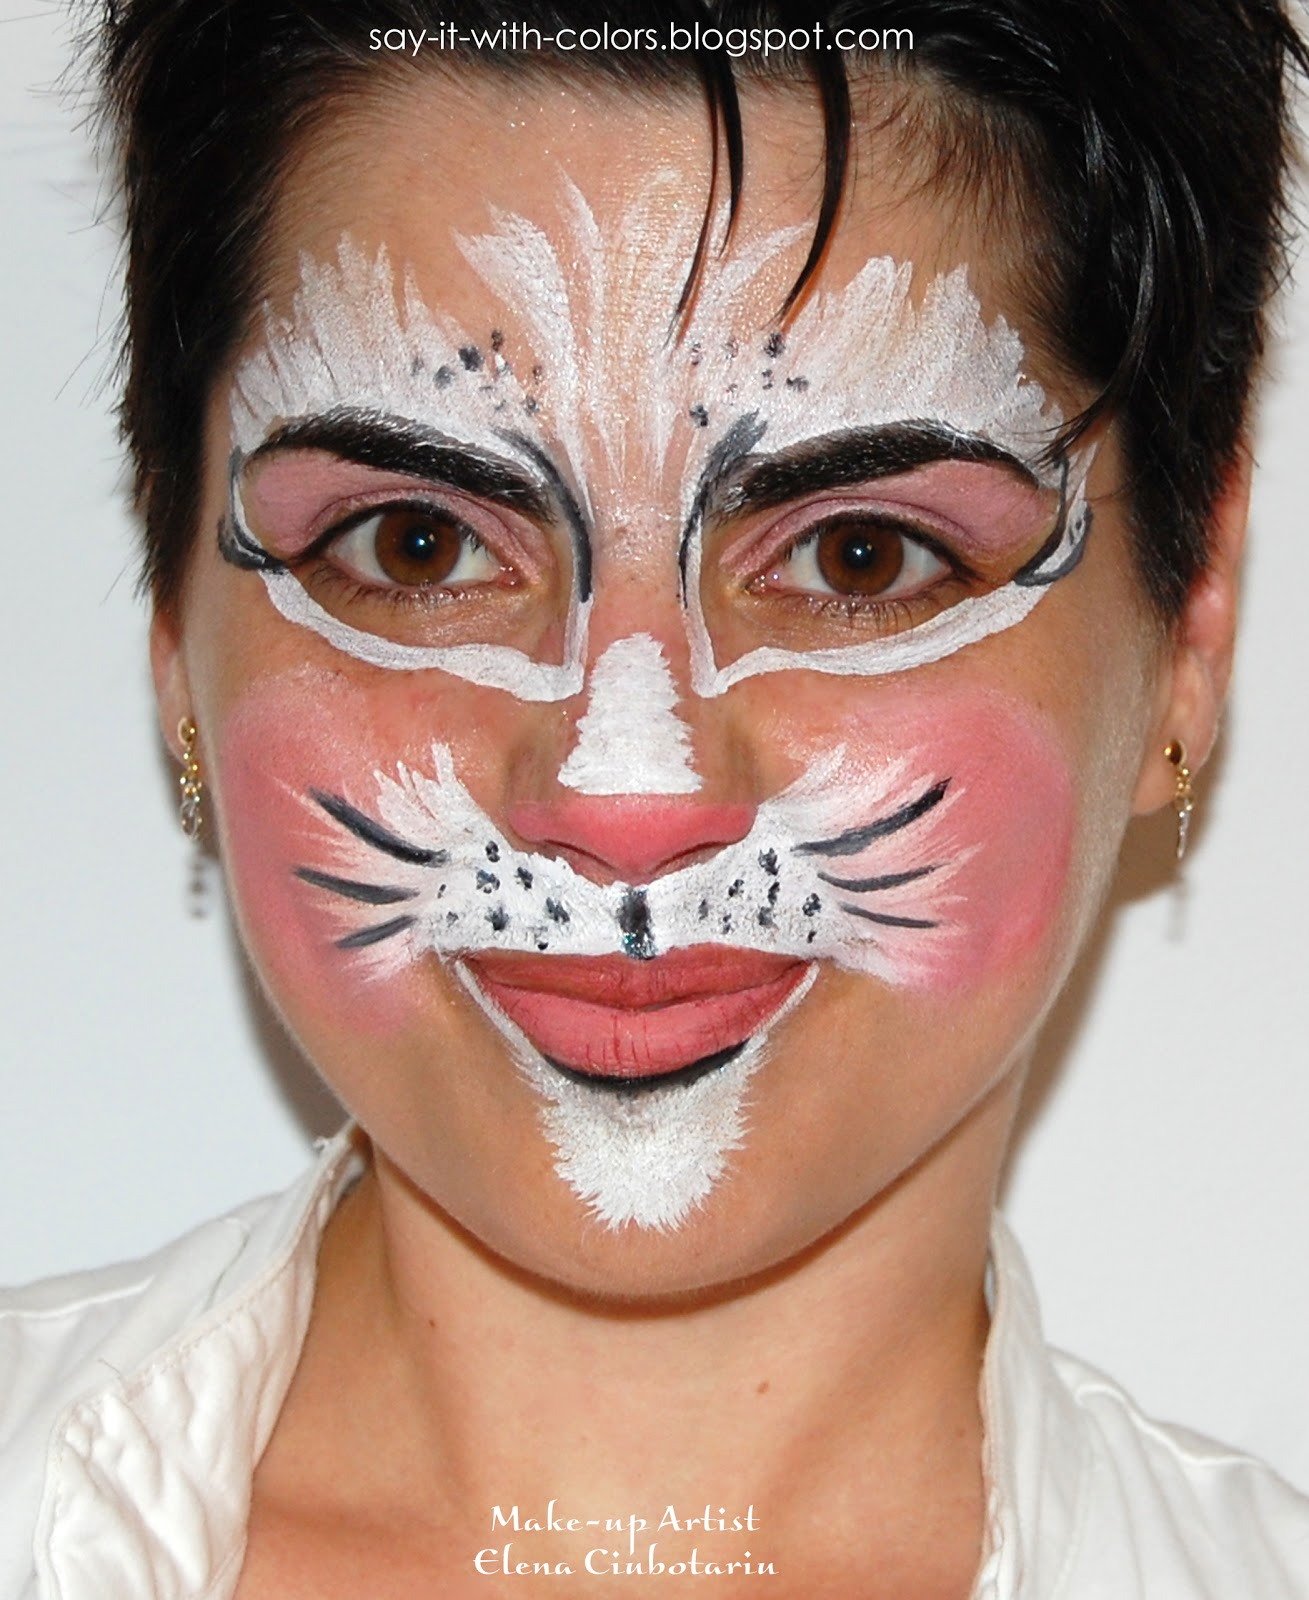 Sexy Cat Face Paint http://say-it-with-colors.blogspot.com/2012_06_01_archive.html